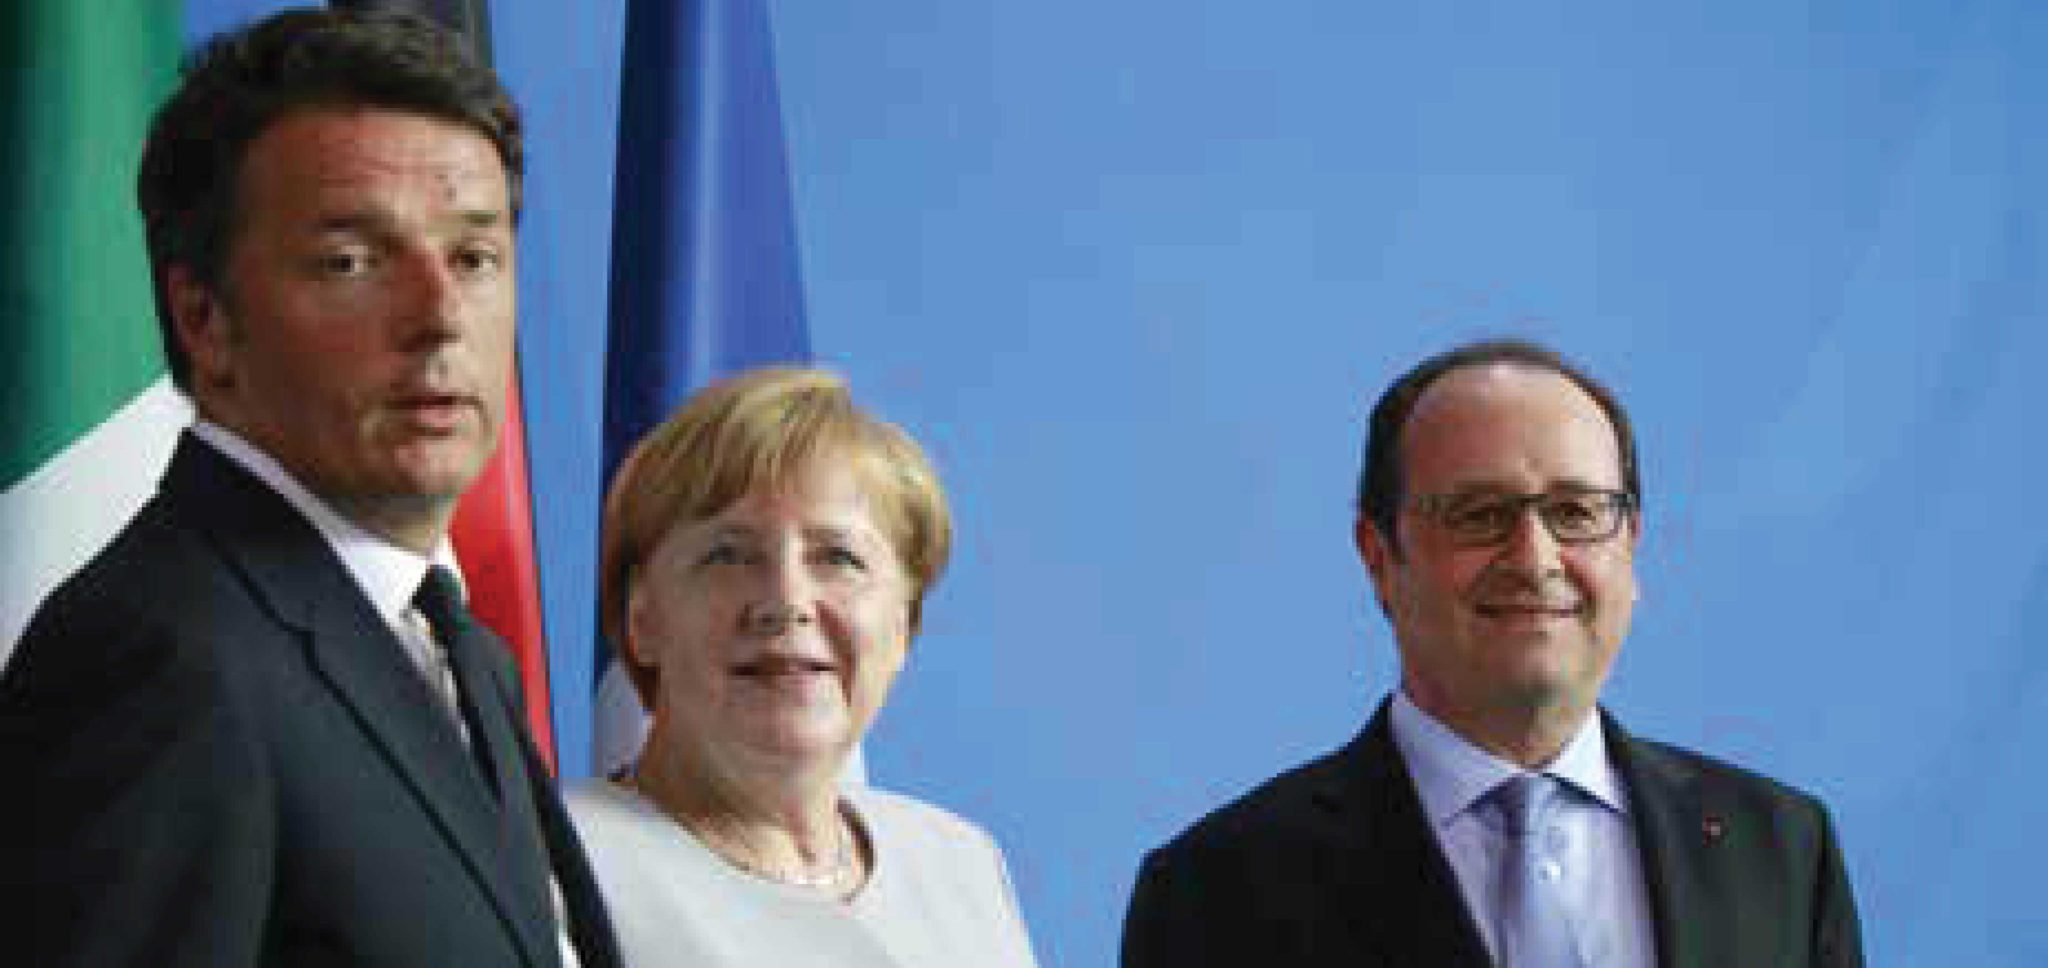 European Leaders React to Presidential Election with fear and loathing